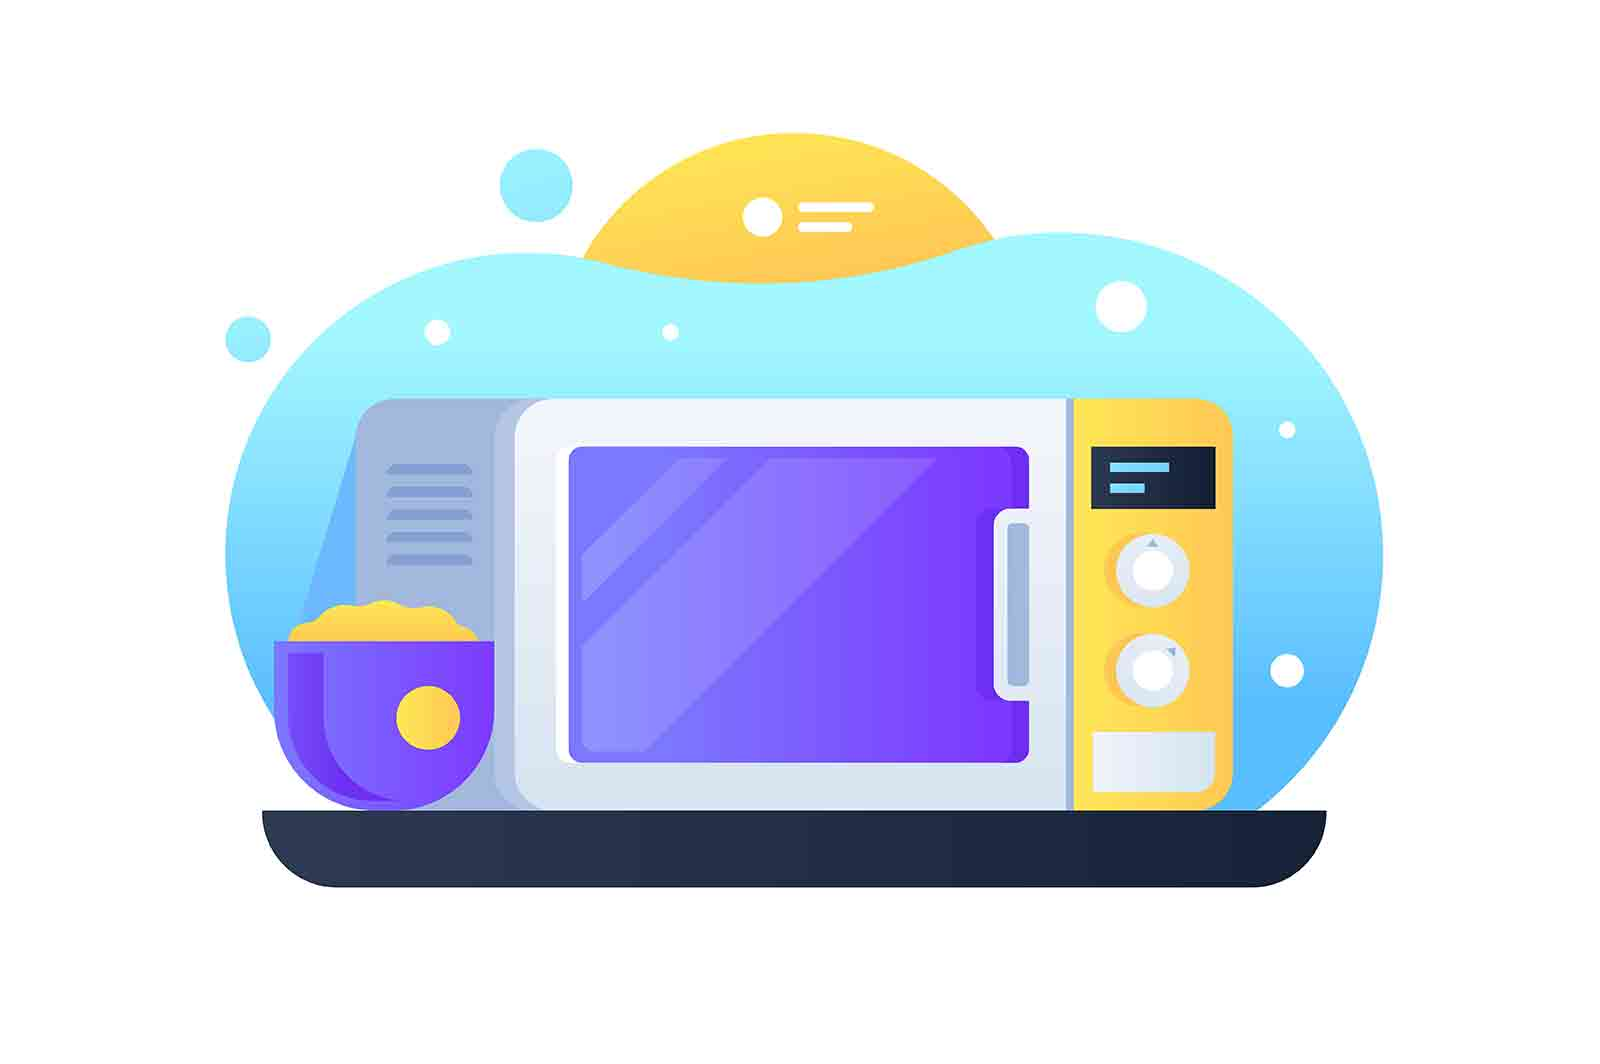 Modern electrical microwave vector illustration. Kitchen equipment for warming meal and products flat style. Dish in blue pot. Domestic appliances concept.